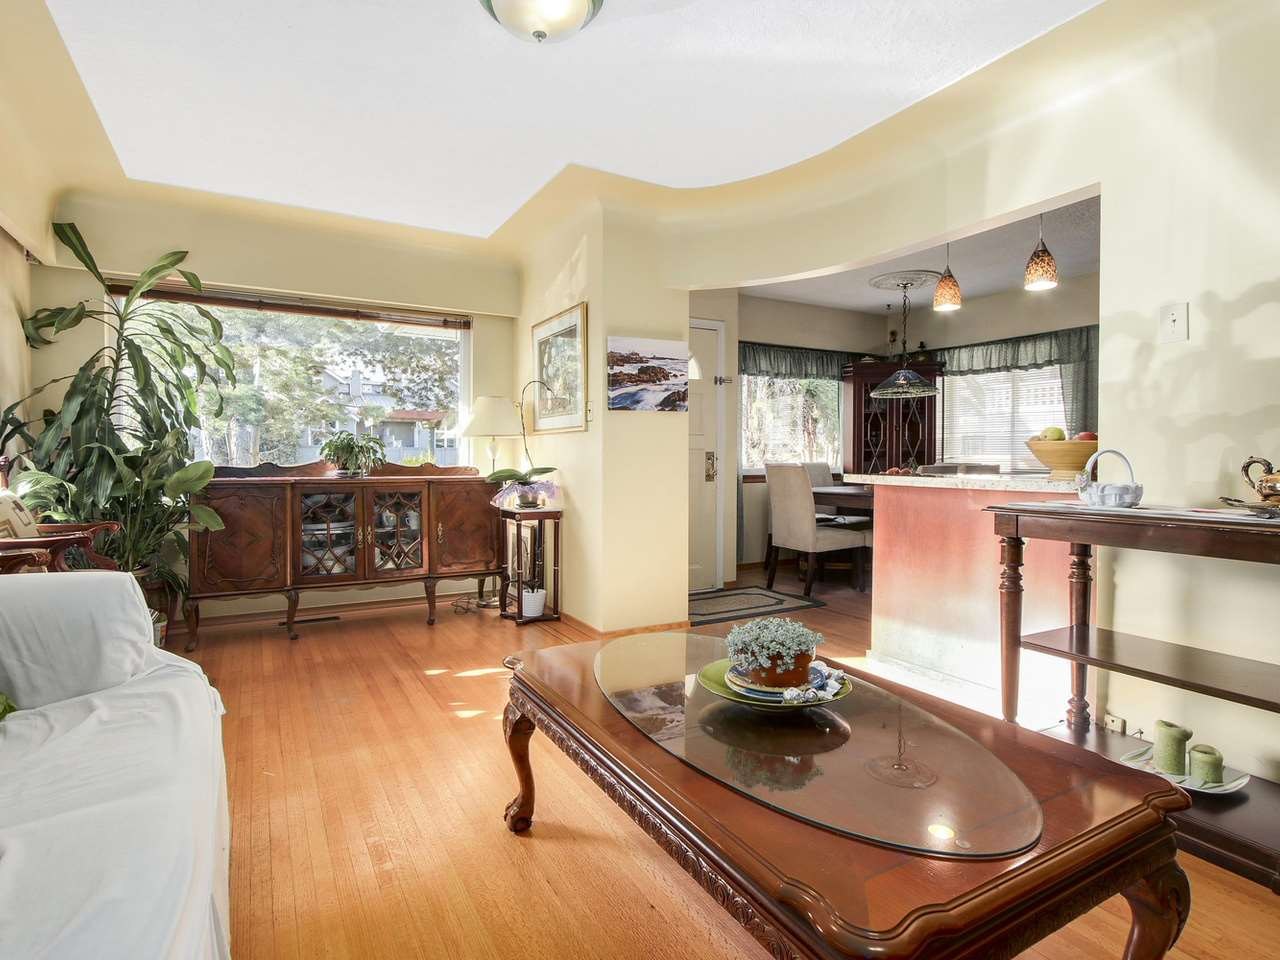 Photo 7: Photos: 1520 MACGOWAN Avenue in North Vancouver: Norgate House for sale : MLS®# R2137032